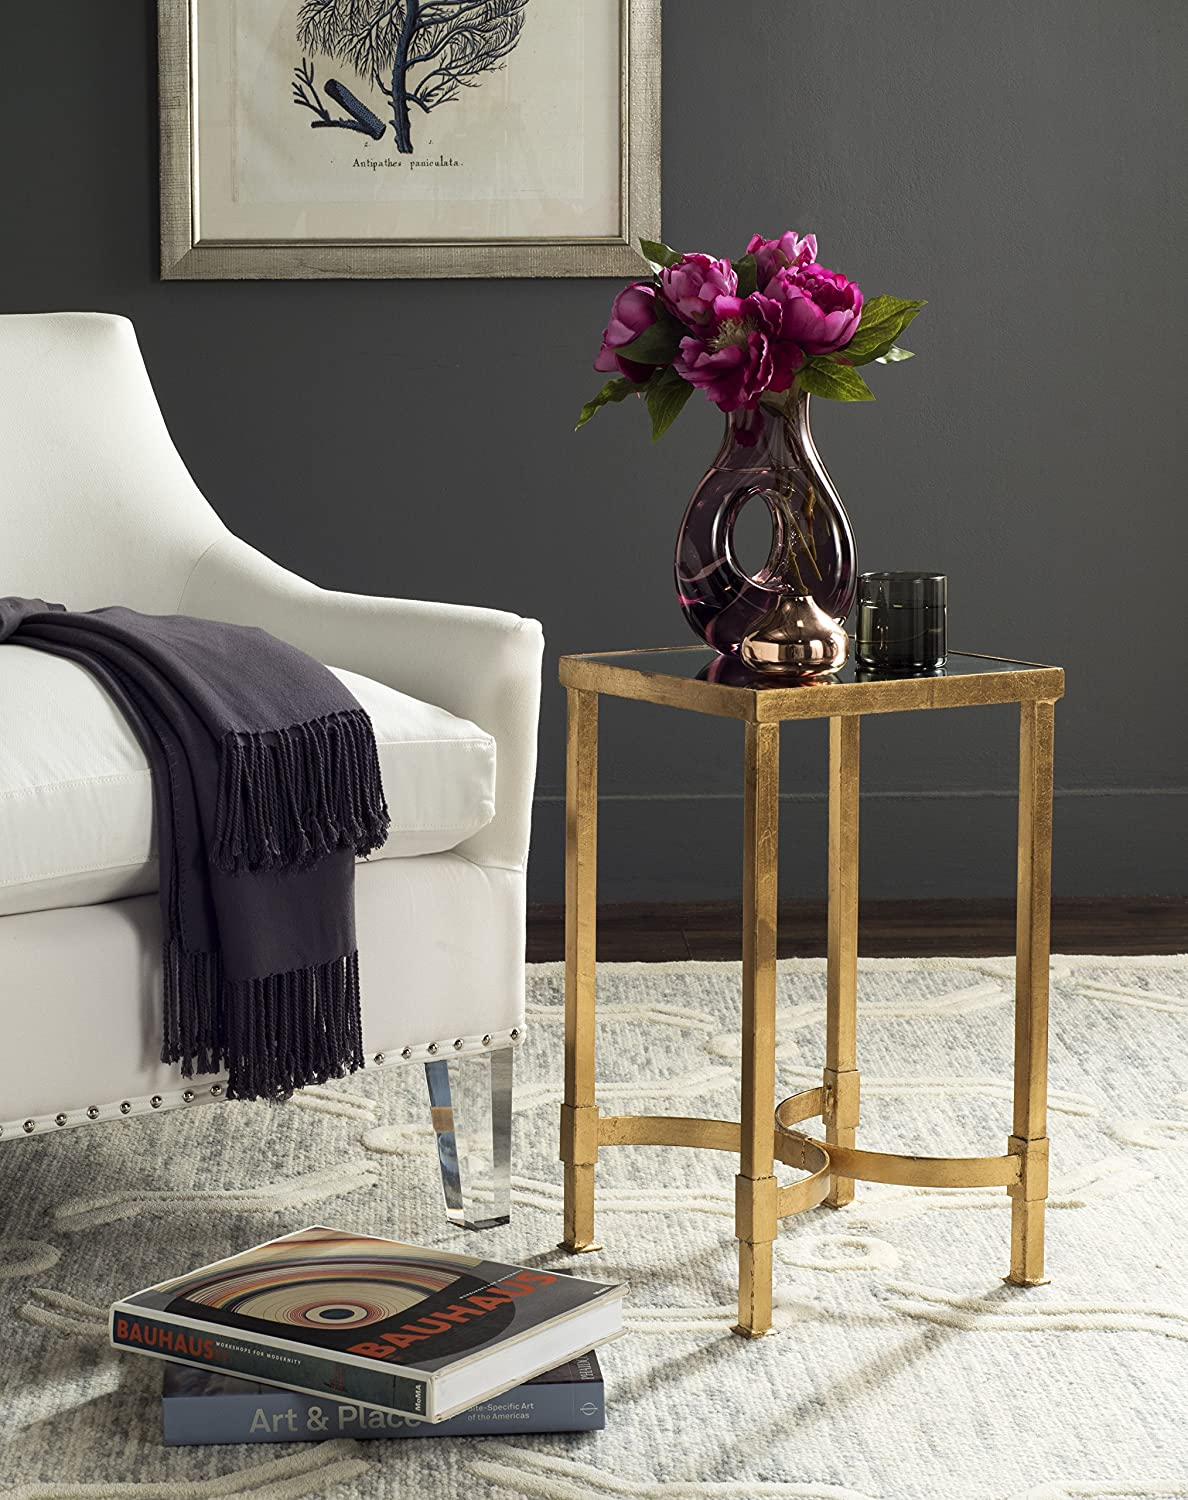 Safavieh Home Collection Halyn Gold Table Las Vegas Mall Safety and trust End Top Leaf Mirror